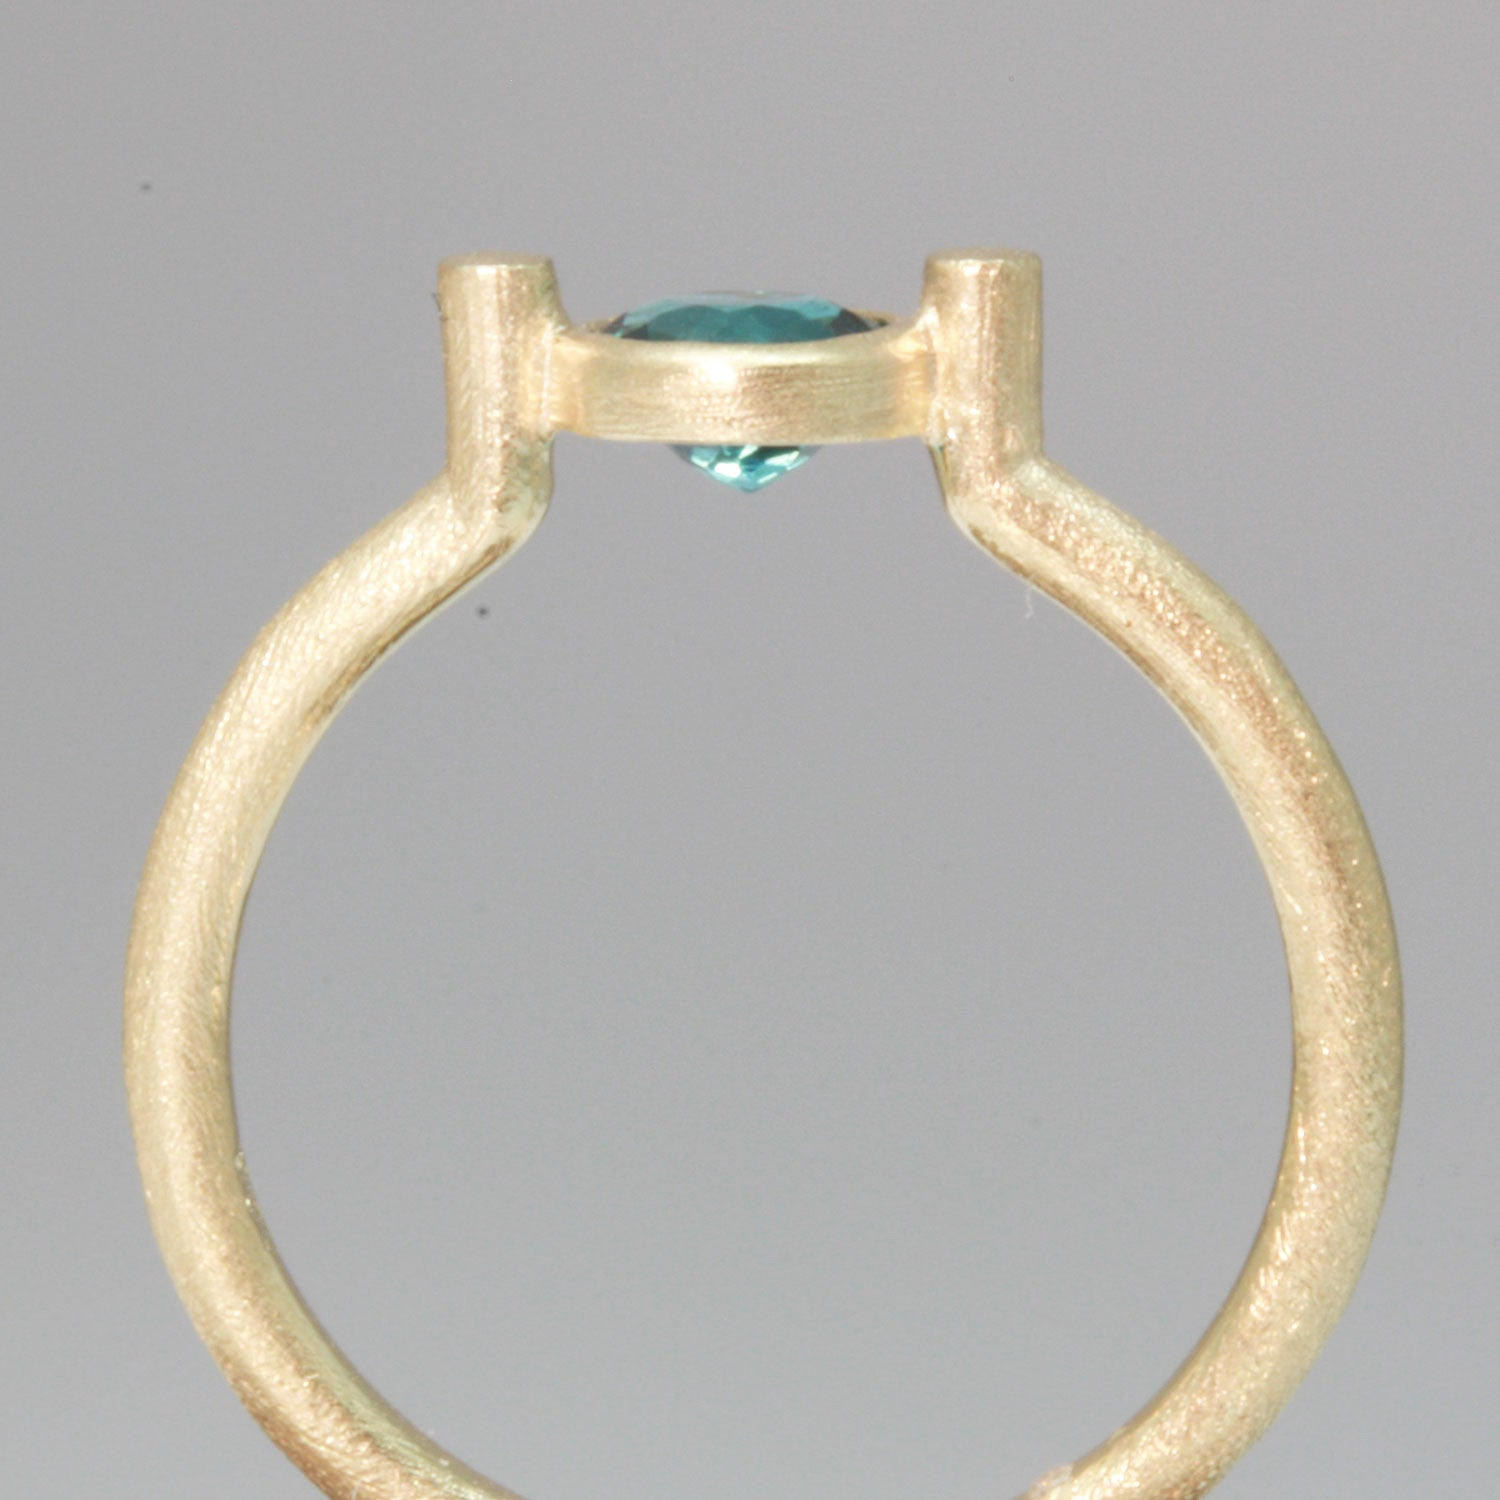 Bezel Set Blue Tourmaline Gold Ring